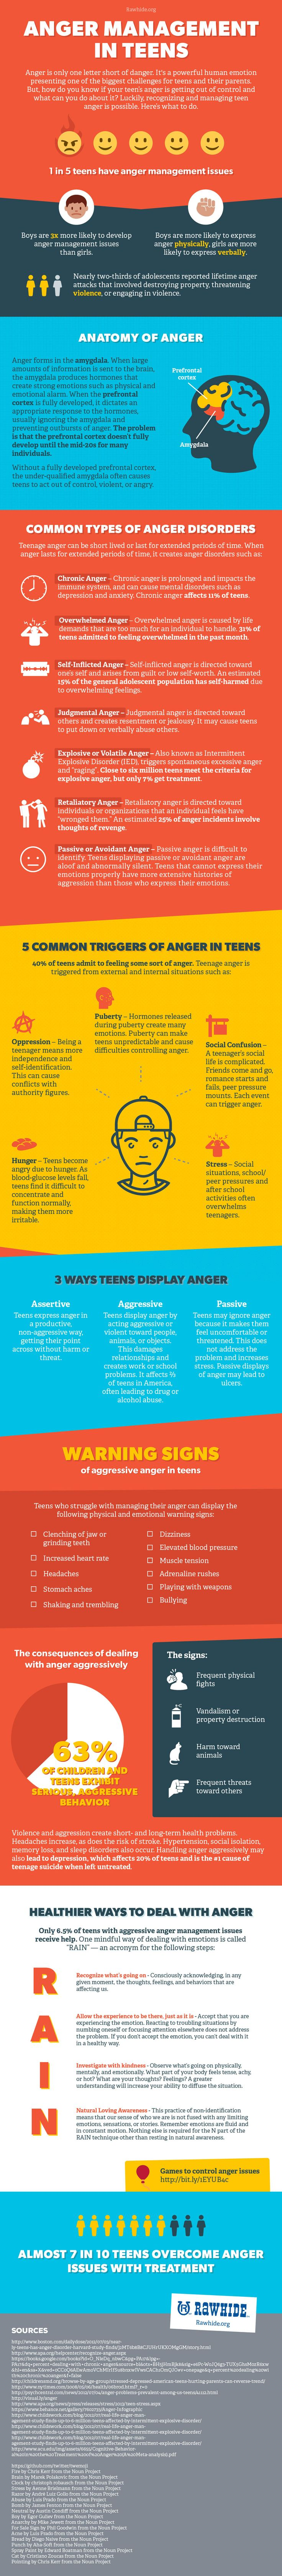 best ideas about anger management anger issues boys are three times more likely to develop anger management issues for more information check